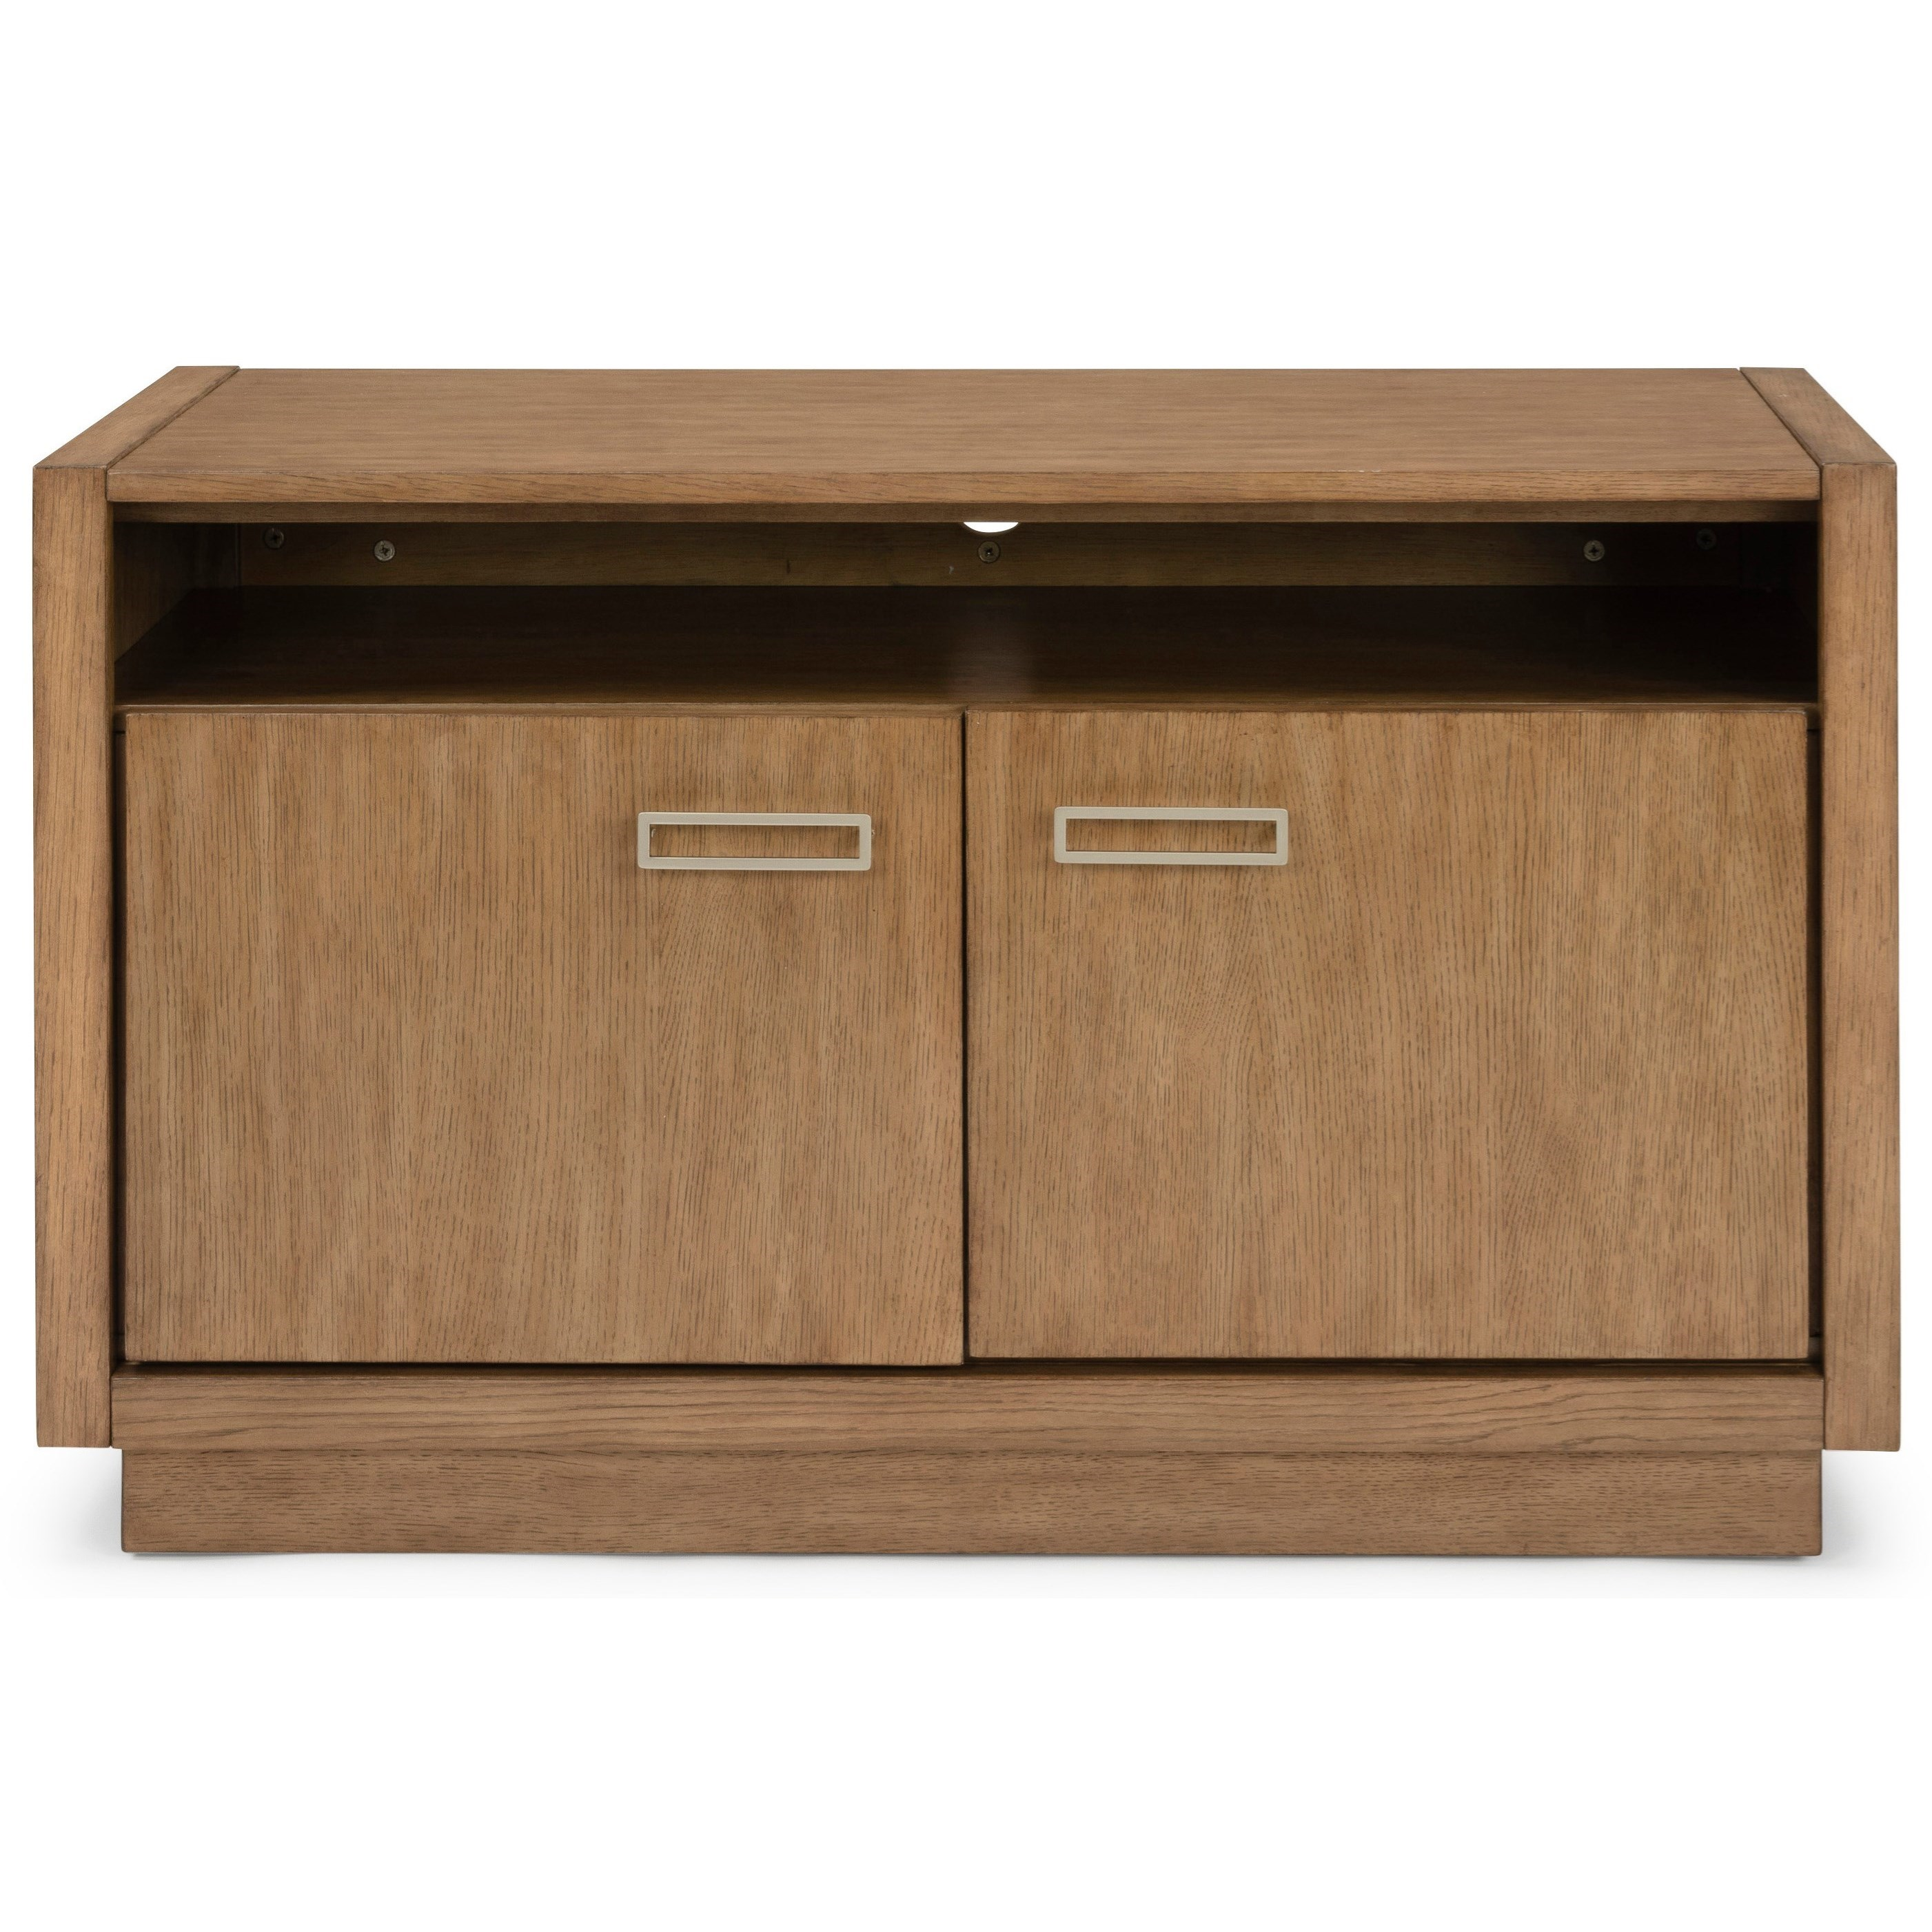 Big Sur Entertainment Stand by Homestyles at Sam Levitz Furniture